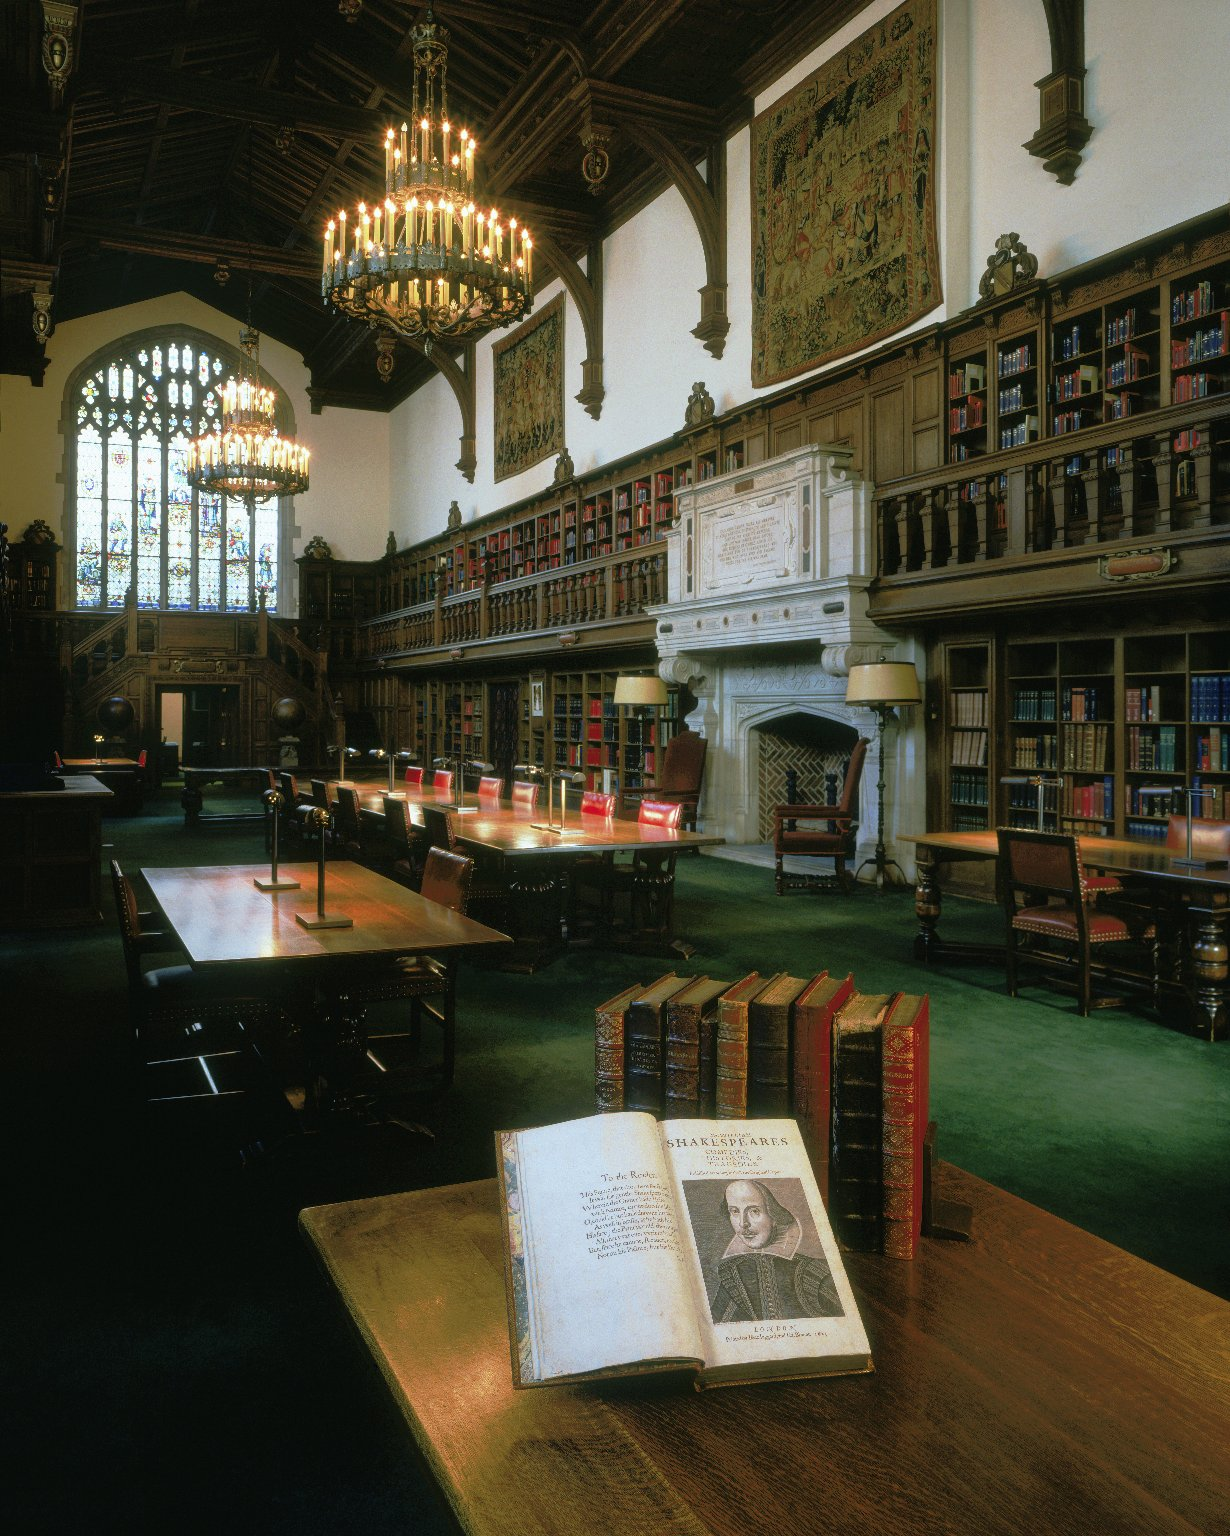 Gail Kern Paster Reading Room. Image by Julie Ainsworth - Folger Shakespeare Library Digital Image Collection http://luna.folger.edu/luna/servlet/s/1c207f, CC BY-SA 4.0, https://commons.wikimedia.org/w/index.php?curid=41900742